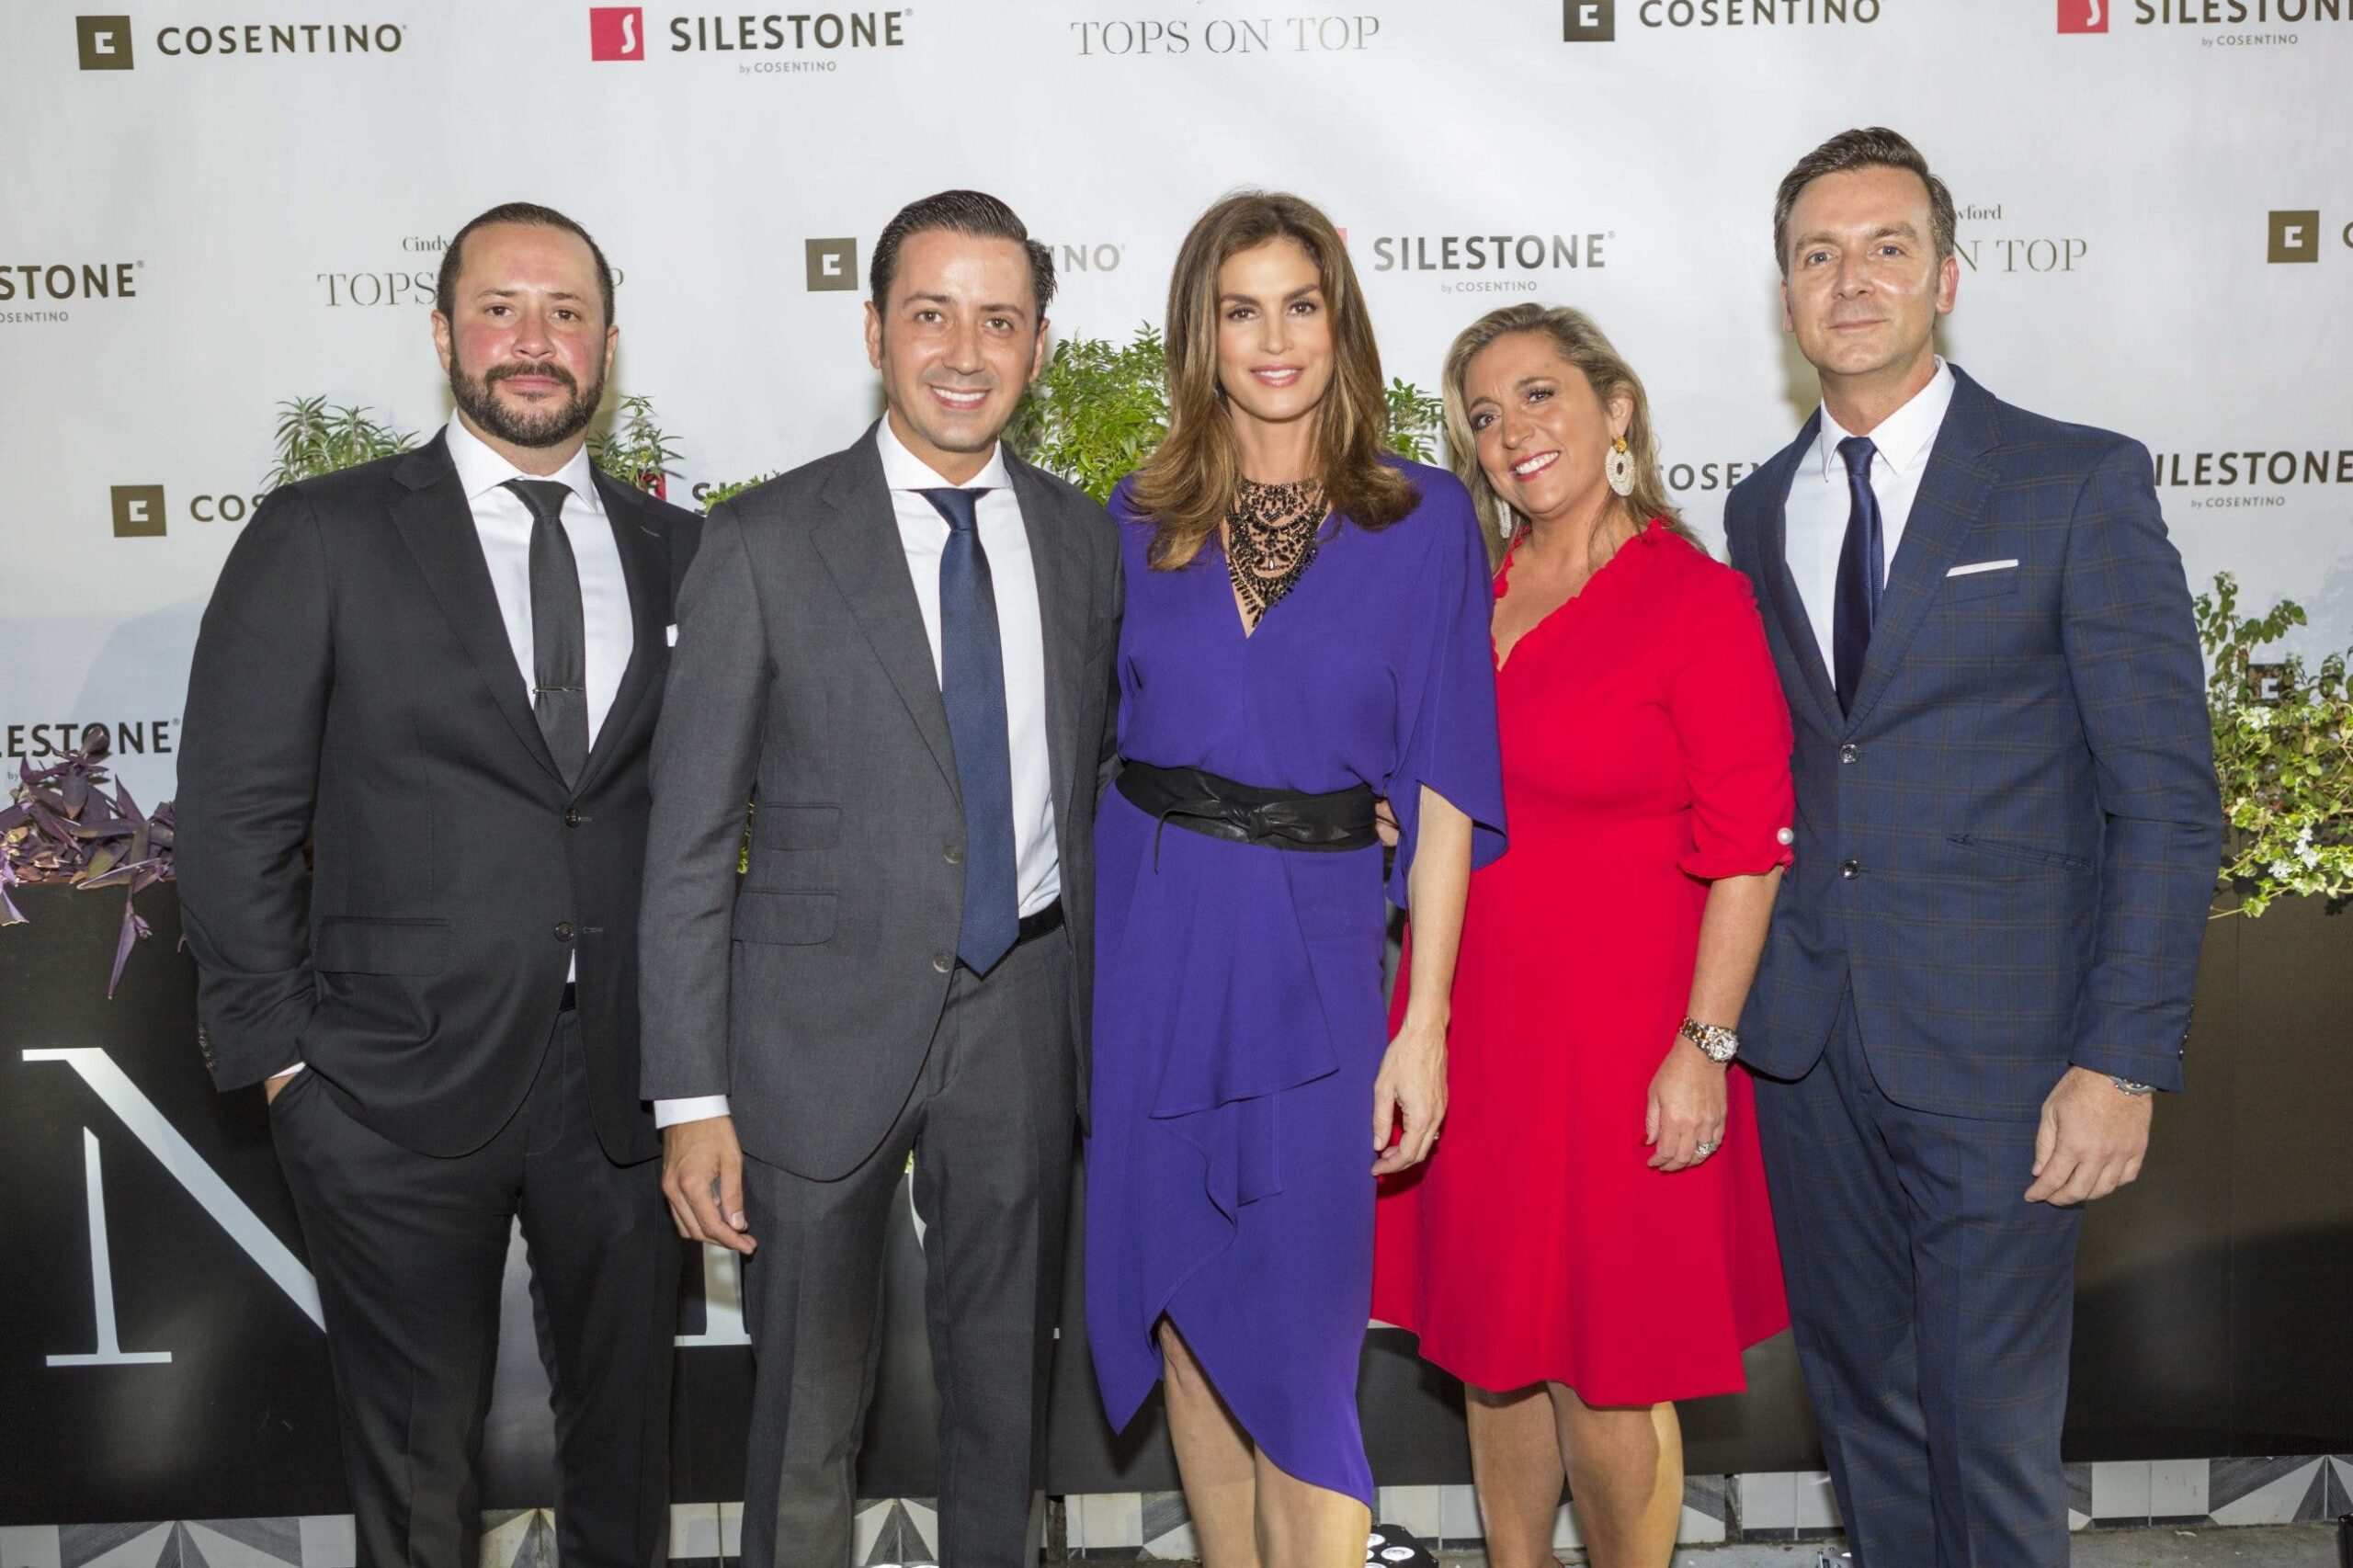 """Image of Cindy Crawford Cosentino 6 prensa 1 scaled in Cindy Crawford and """"Tops on Top"""" by Silestone® in Houston - Cosentino"""